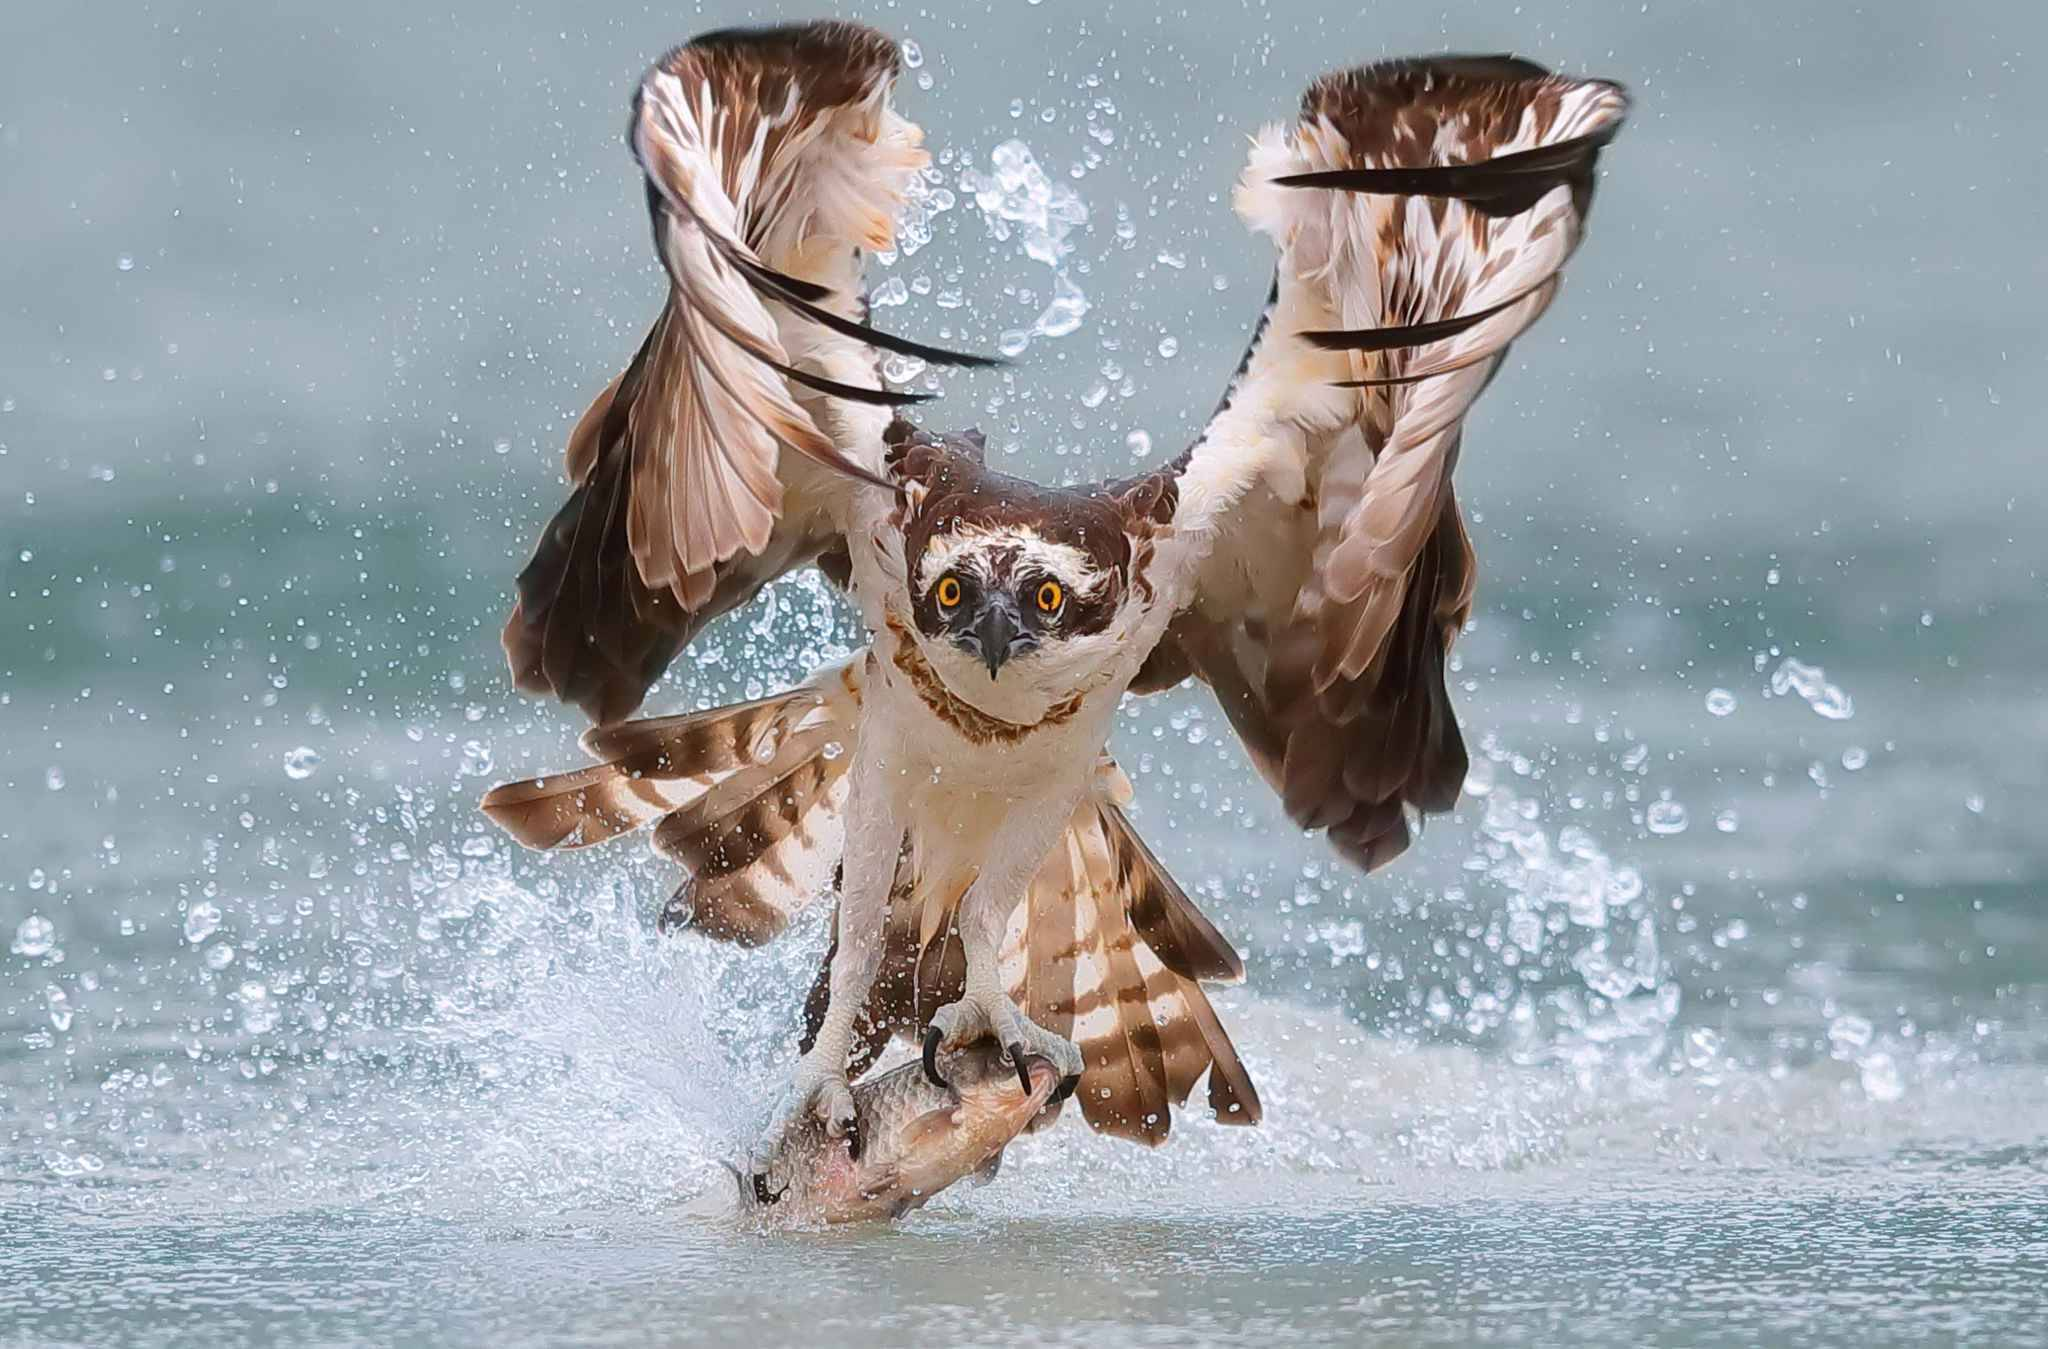 Pic by Chen Chengguang/Caters News - (Pictured: Stunning images show a mighty bird of prey swooping from the sky and hooking a fish its talons on the outskirts of Taipei, Taiwan.) -An impressive osprey has swooped into a stream from the sky to catch a fish with its claws. Chen Chengguang, took the stunning images in Taipei, Taiwan, earlier this year. The images show the mighty bird of prey swooping from the sky and hooking a fish its talons. Chen, a photographer, added: The osprey dives from the air into the river and uses its powerful claws. Catching fish for the bird of prey is almost fool proof, its wonderful.